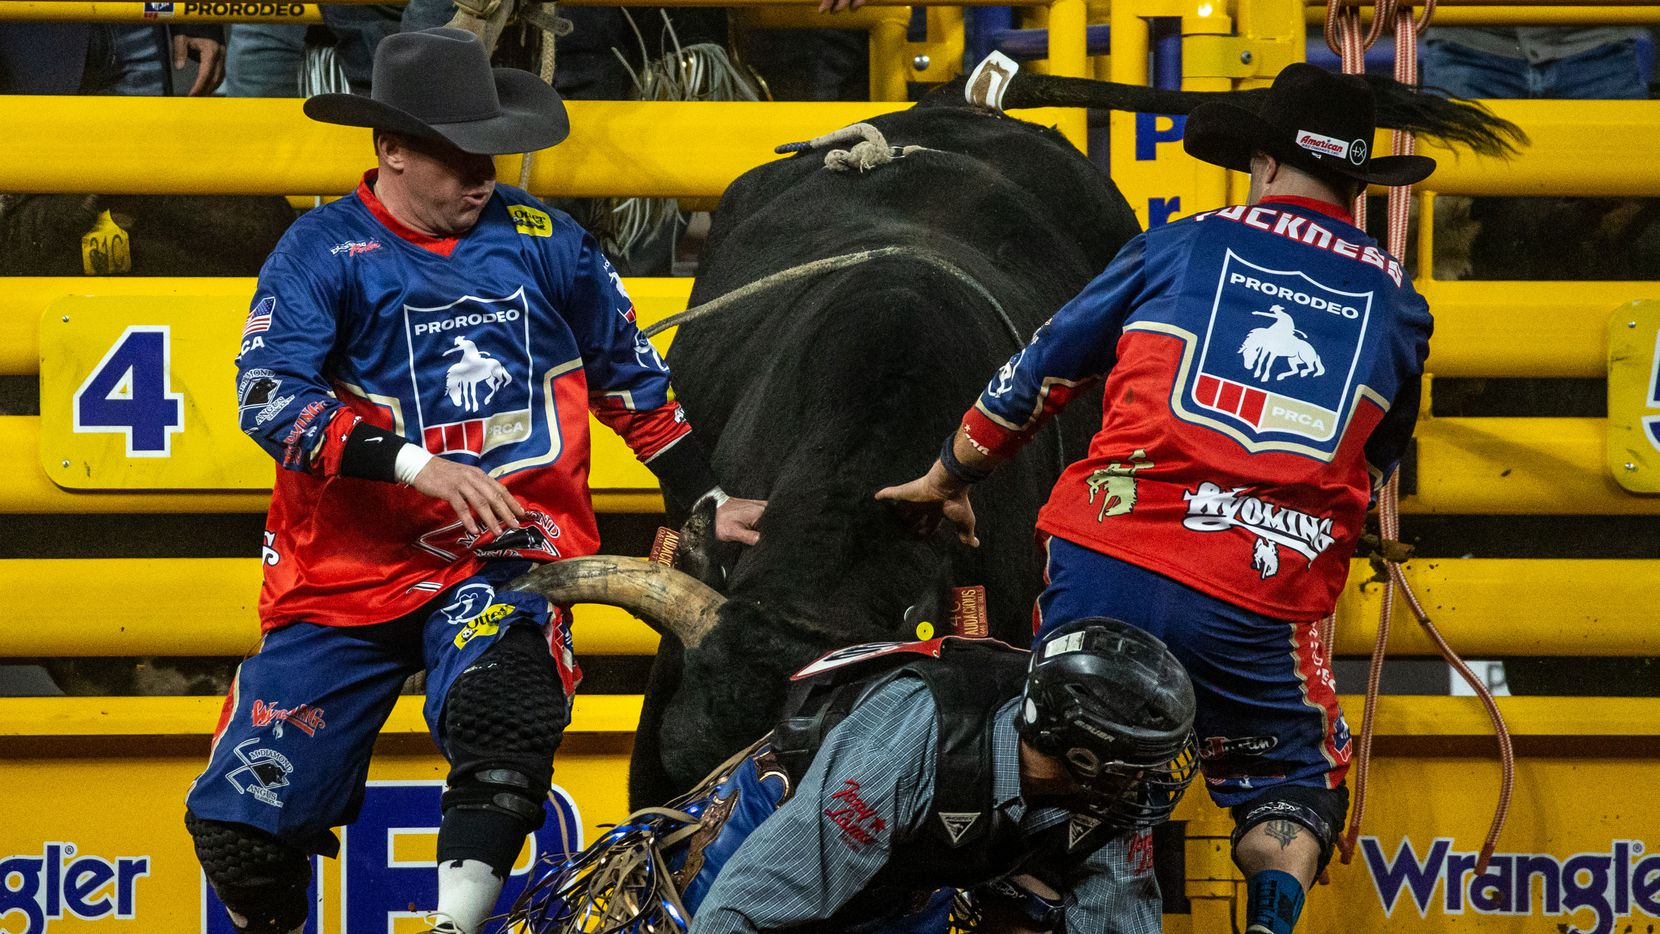 From left, bullfighters Nate Jestes and Dusty Tuckness redirect Audacious the bull during the bull riding event on the sixth night of the National Finals Rodeo at Globe Life Field in Arlington, Texas, on Tuesday, Dec. 10, 2020.